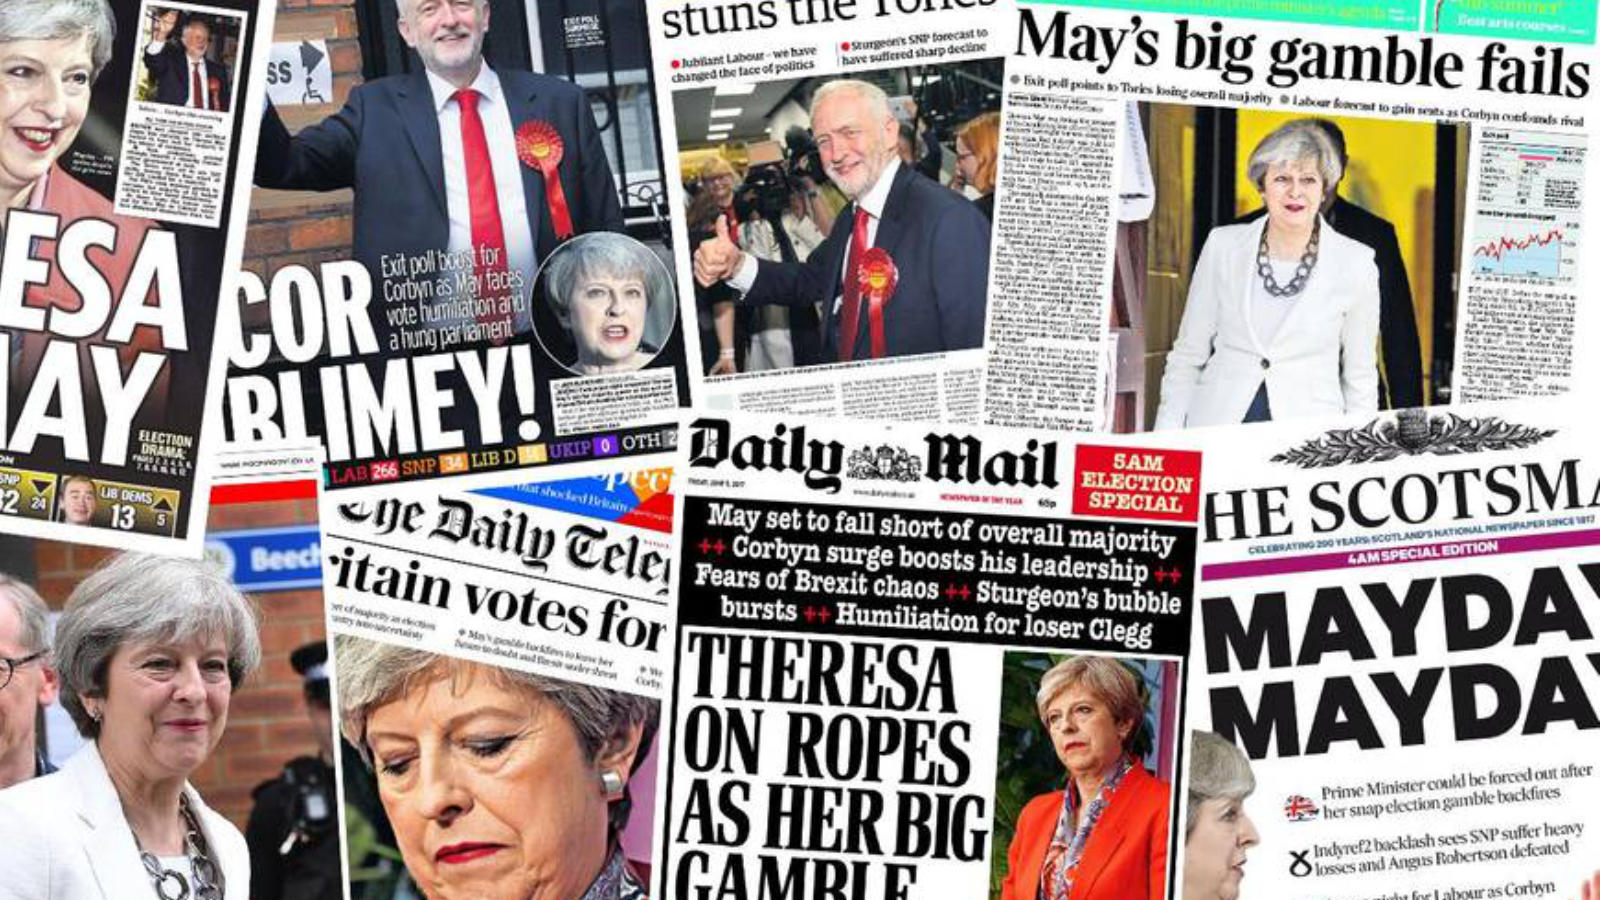 2017 General election results: Newspapers react with shock to Theresa May's hung Parliament chaos, Image: Evening Standard